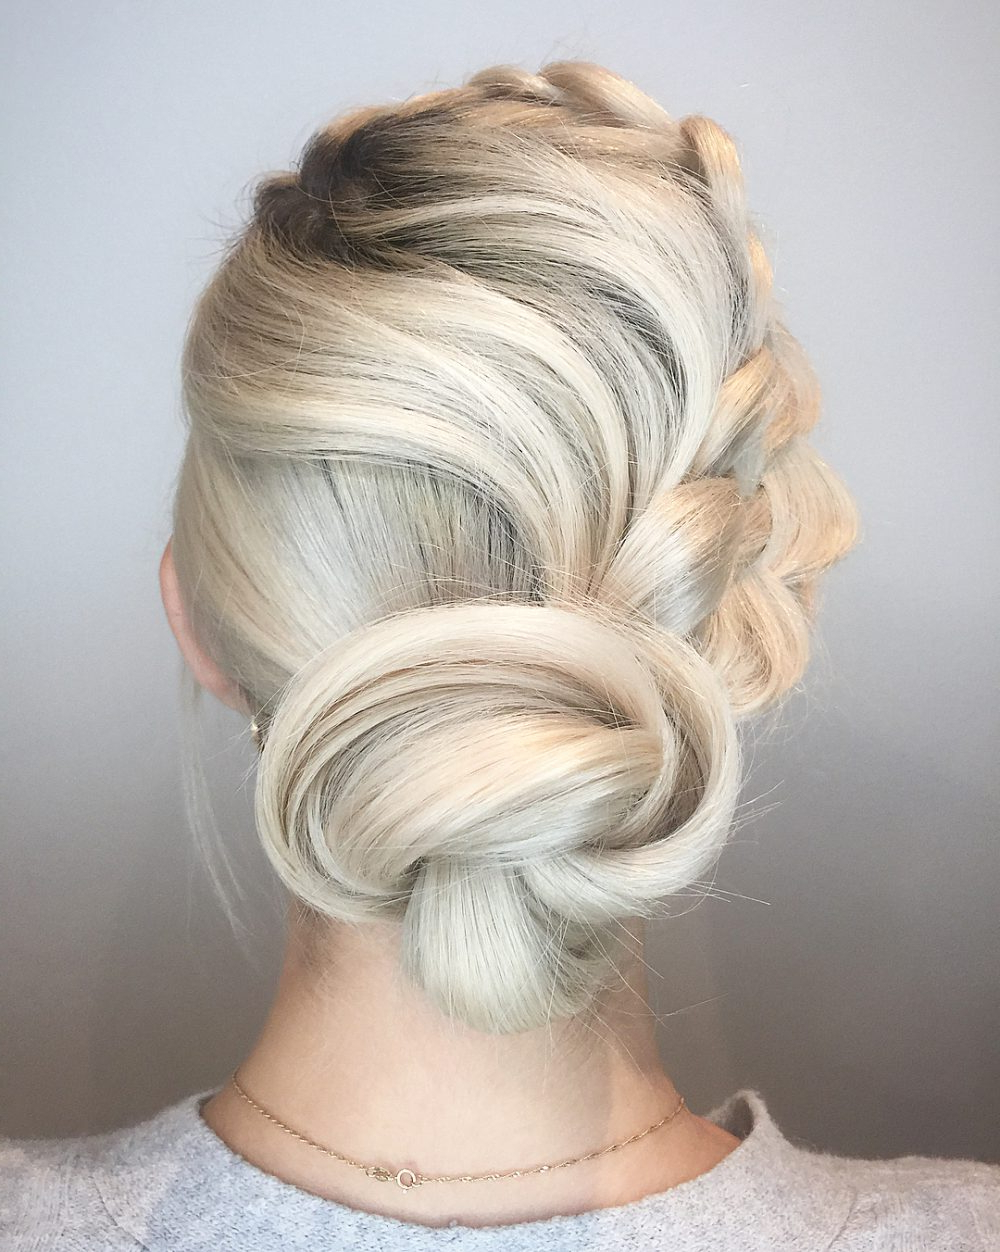 Most Recent Curly Knot Sideways Prom Hairstyles Regarding 34 Cutest Prom Updos For 2019 – Easy Updo Hairstyles (View 11 of 20)